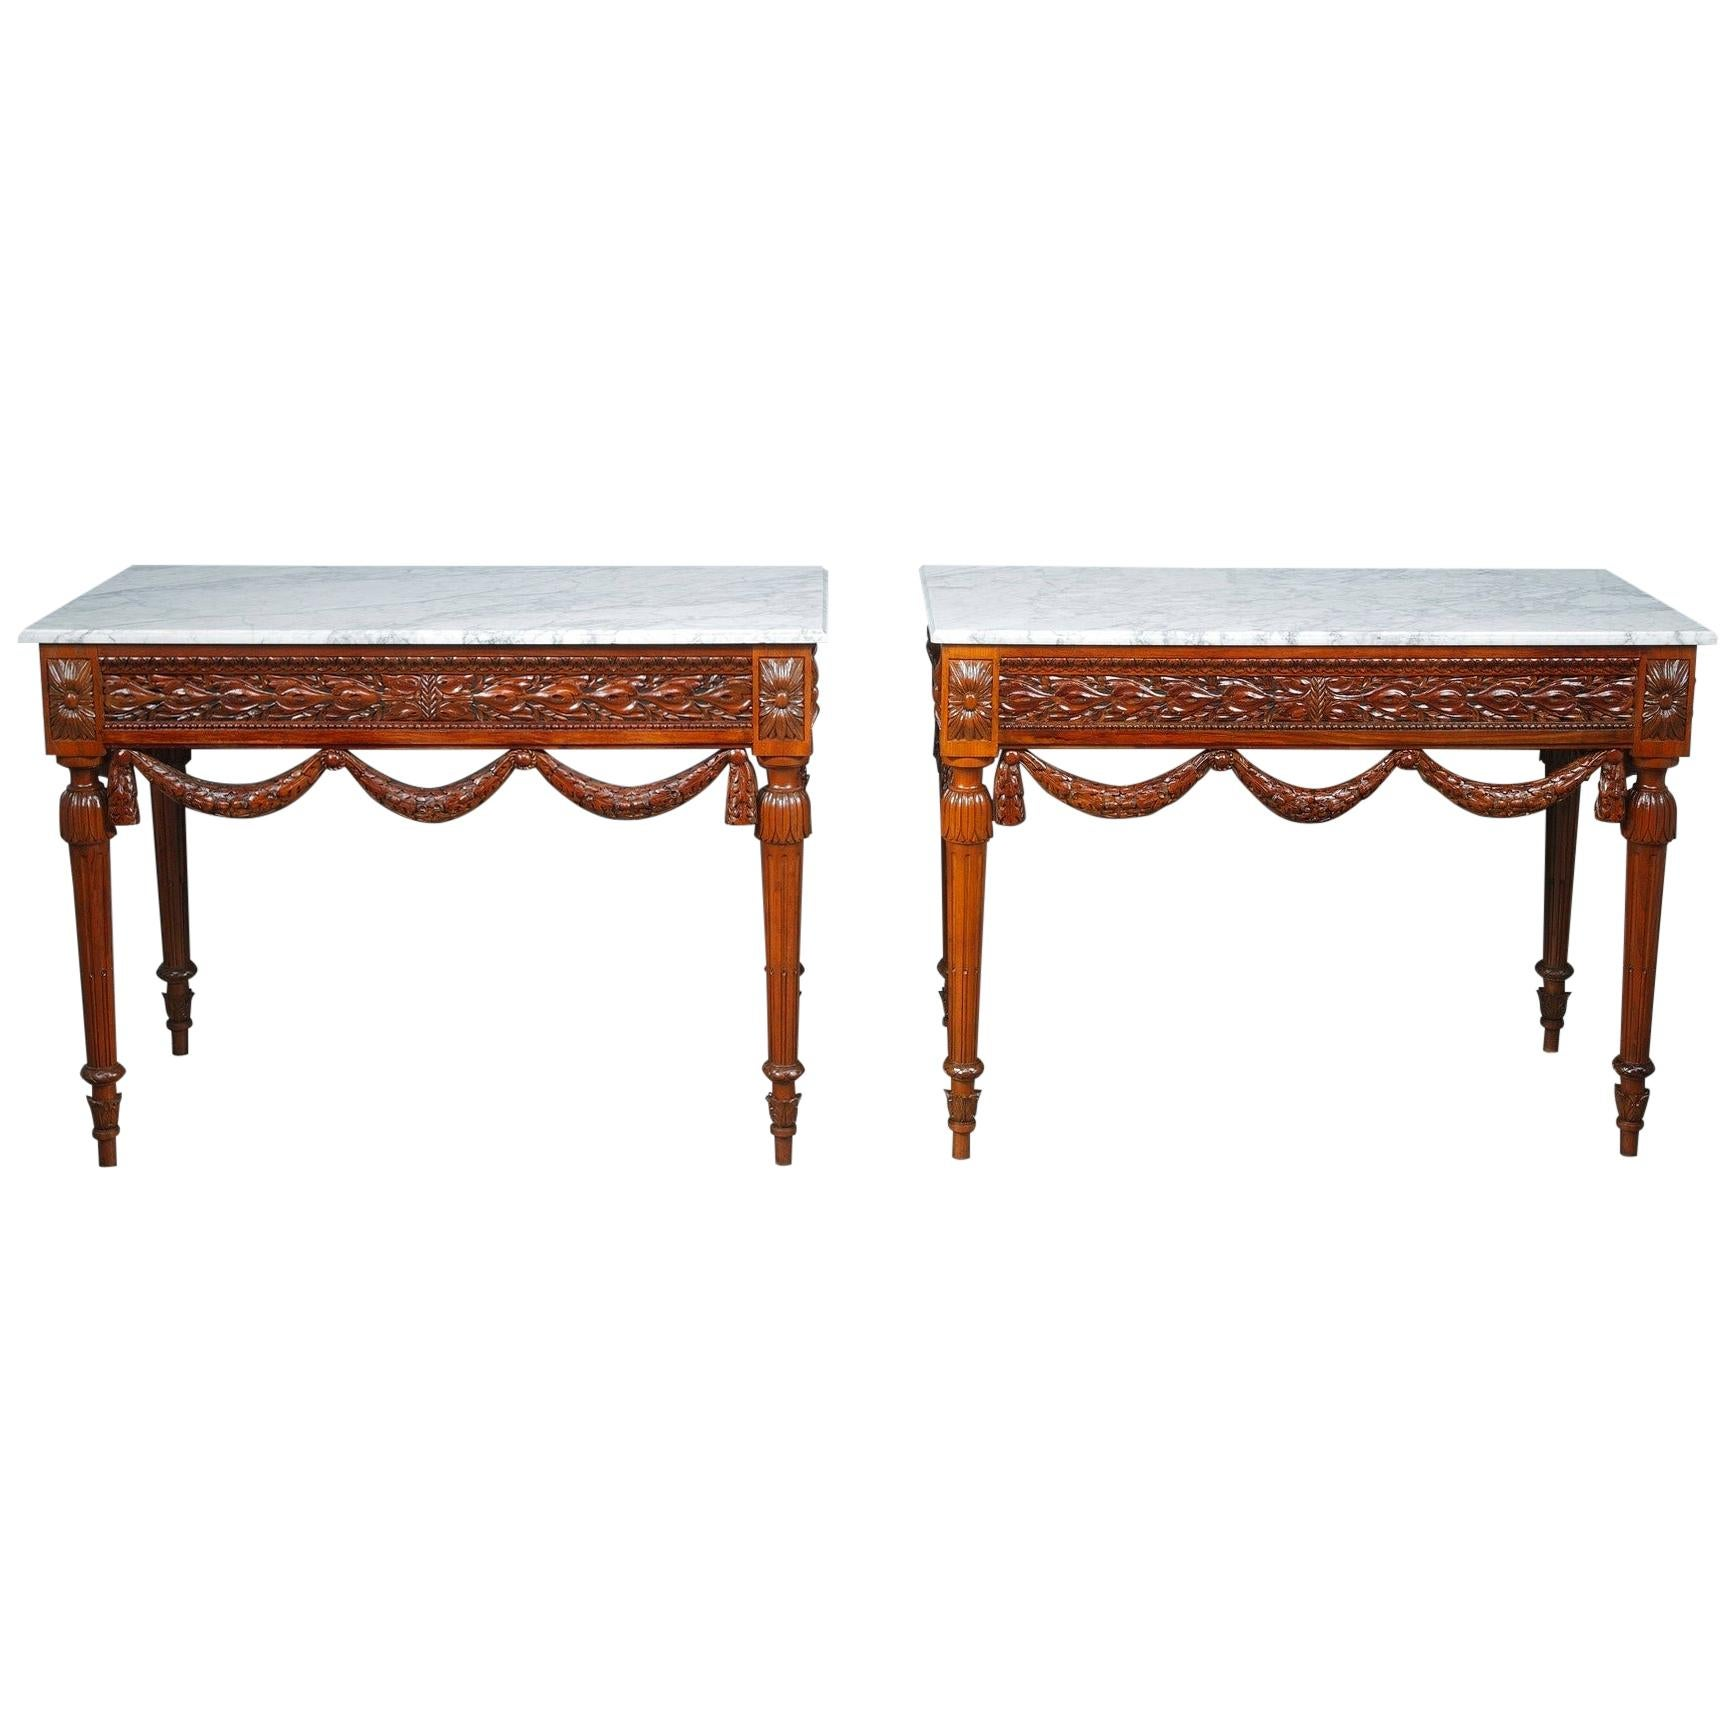 Pair of Louis XVI-Style Walnut Consoles Tables